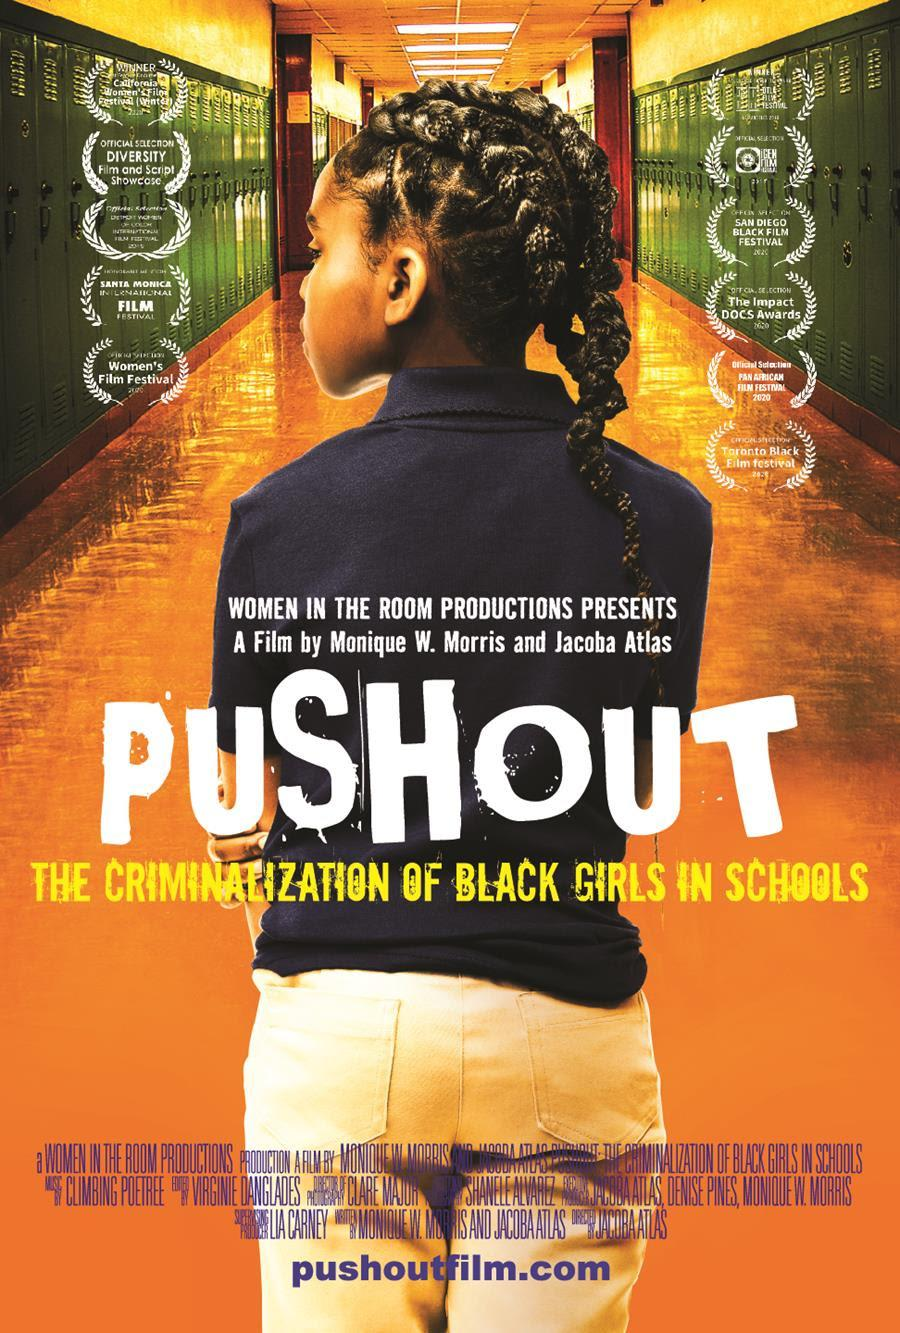 "A new documentary, Pushout: The Criminalization of Black Girls in Schools, hopes to ""point the way for positive change"" through the power of storytelling."